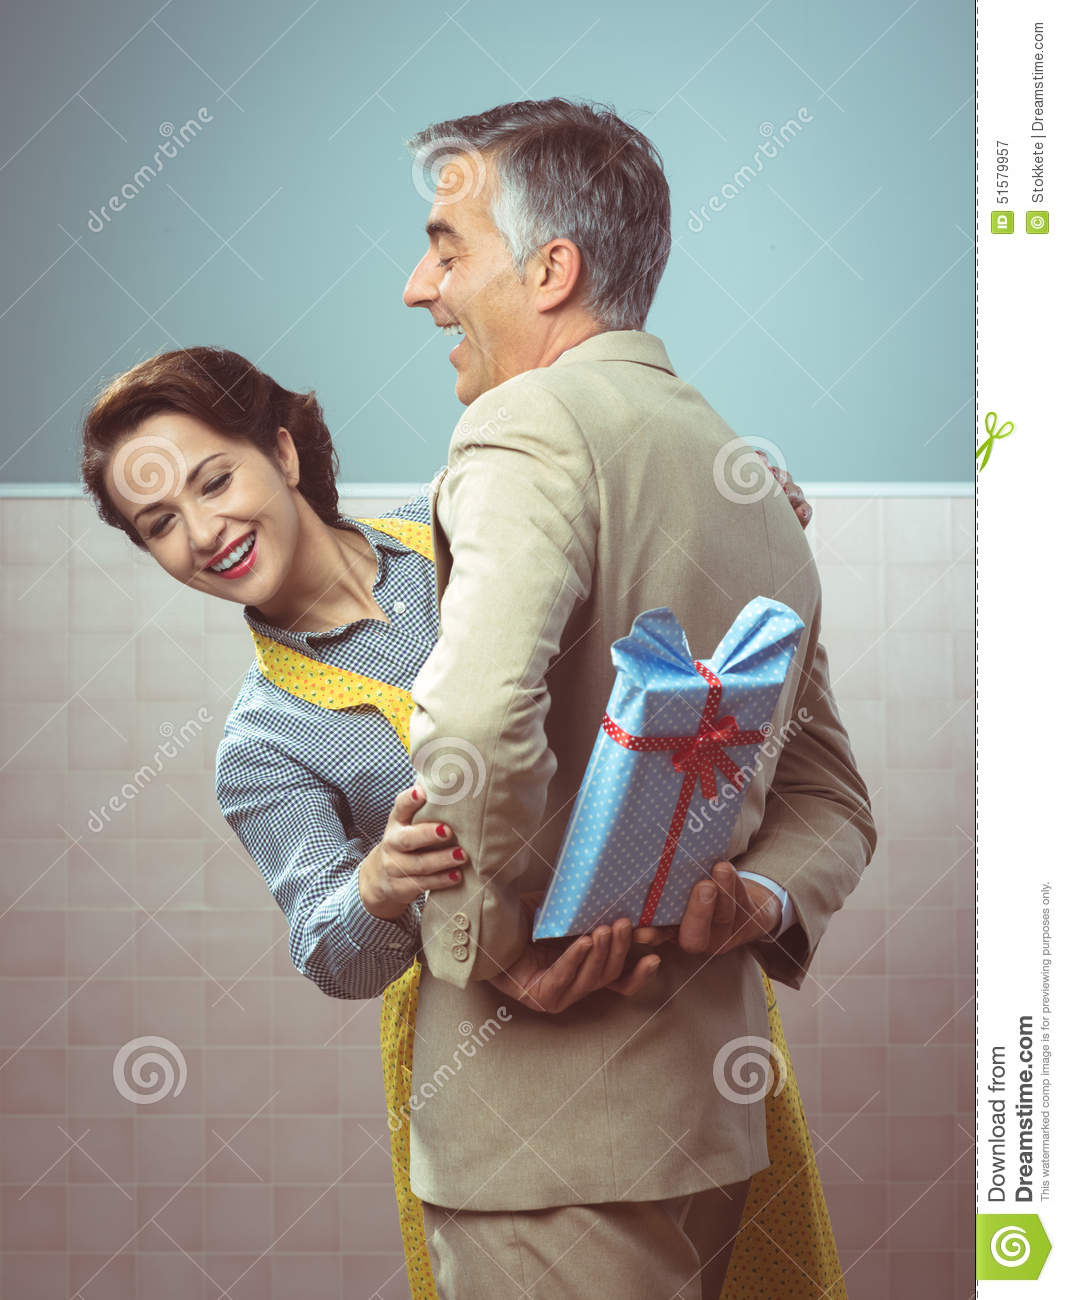 A Surprise Gift For Her Stock Image. Image Of Laughing